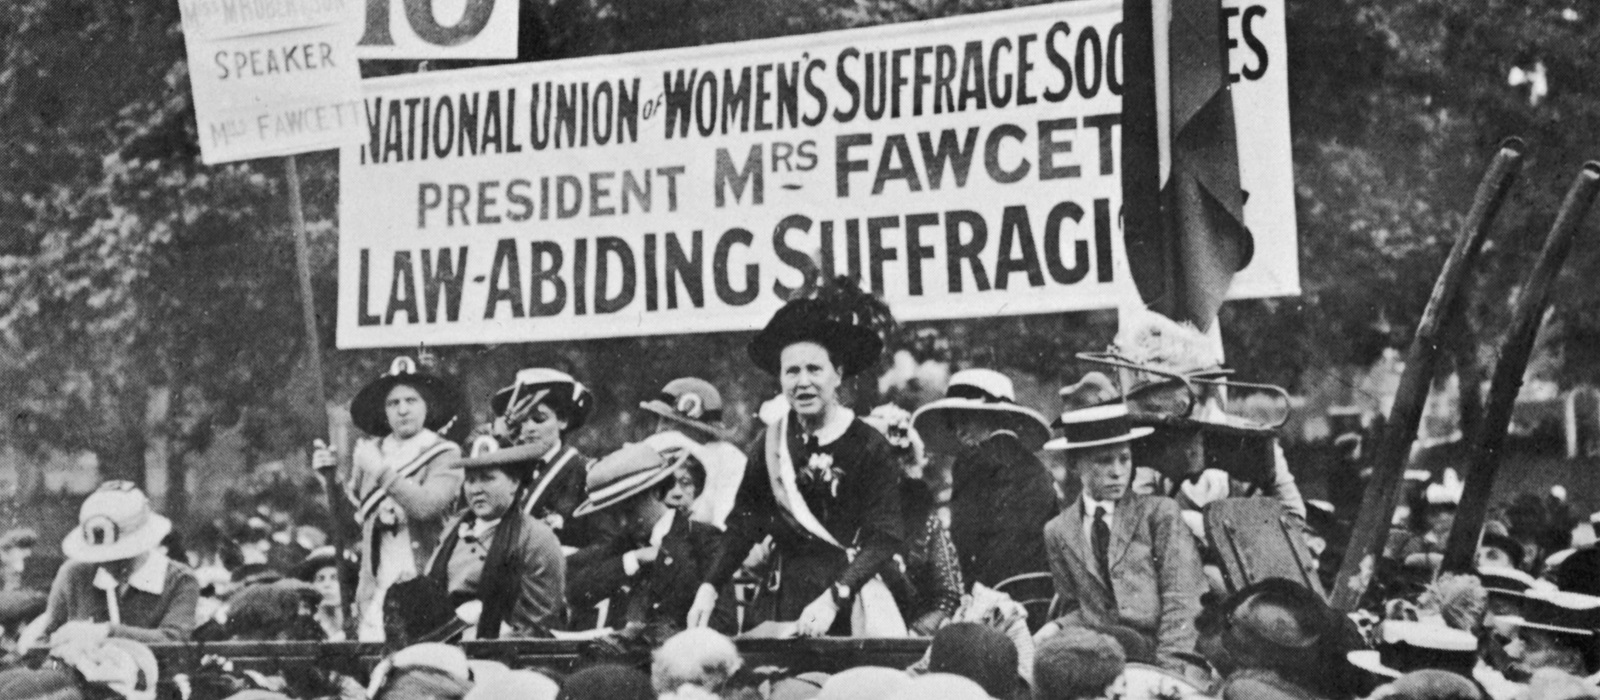 Millicent Fawcett giving a speech in Hyde Park with womens rights activists